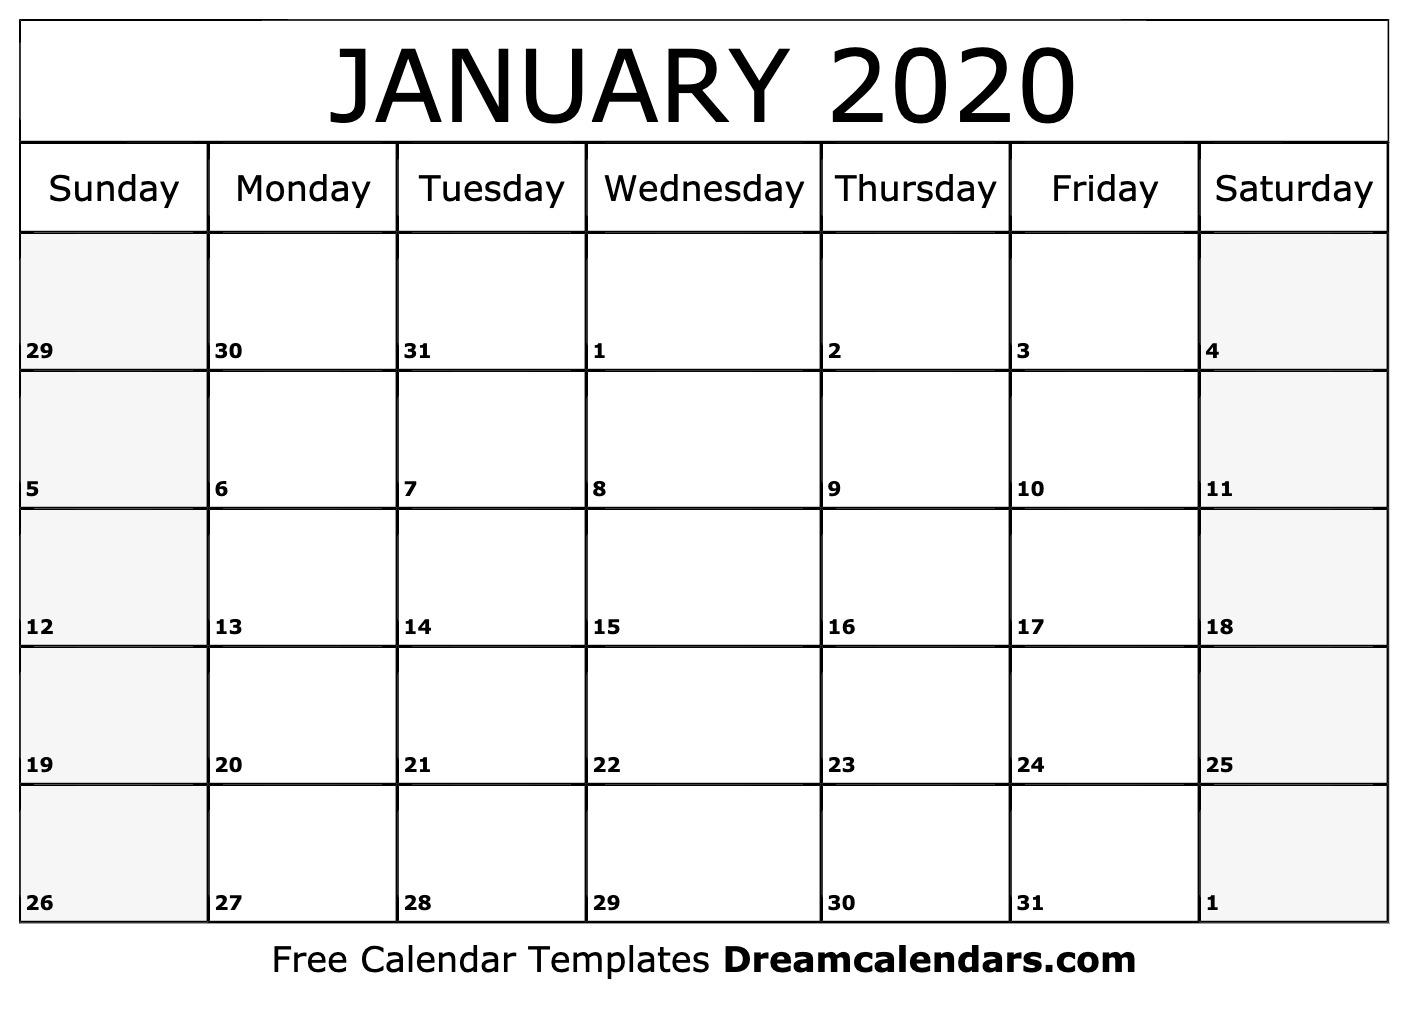 2020 Calendar For January Printable January 2020 Calendar